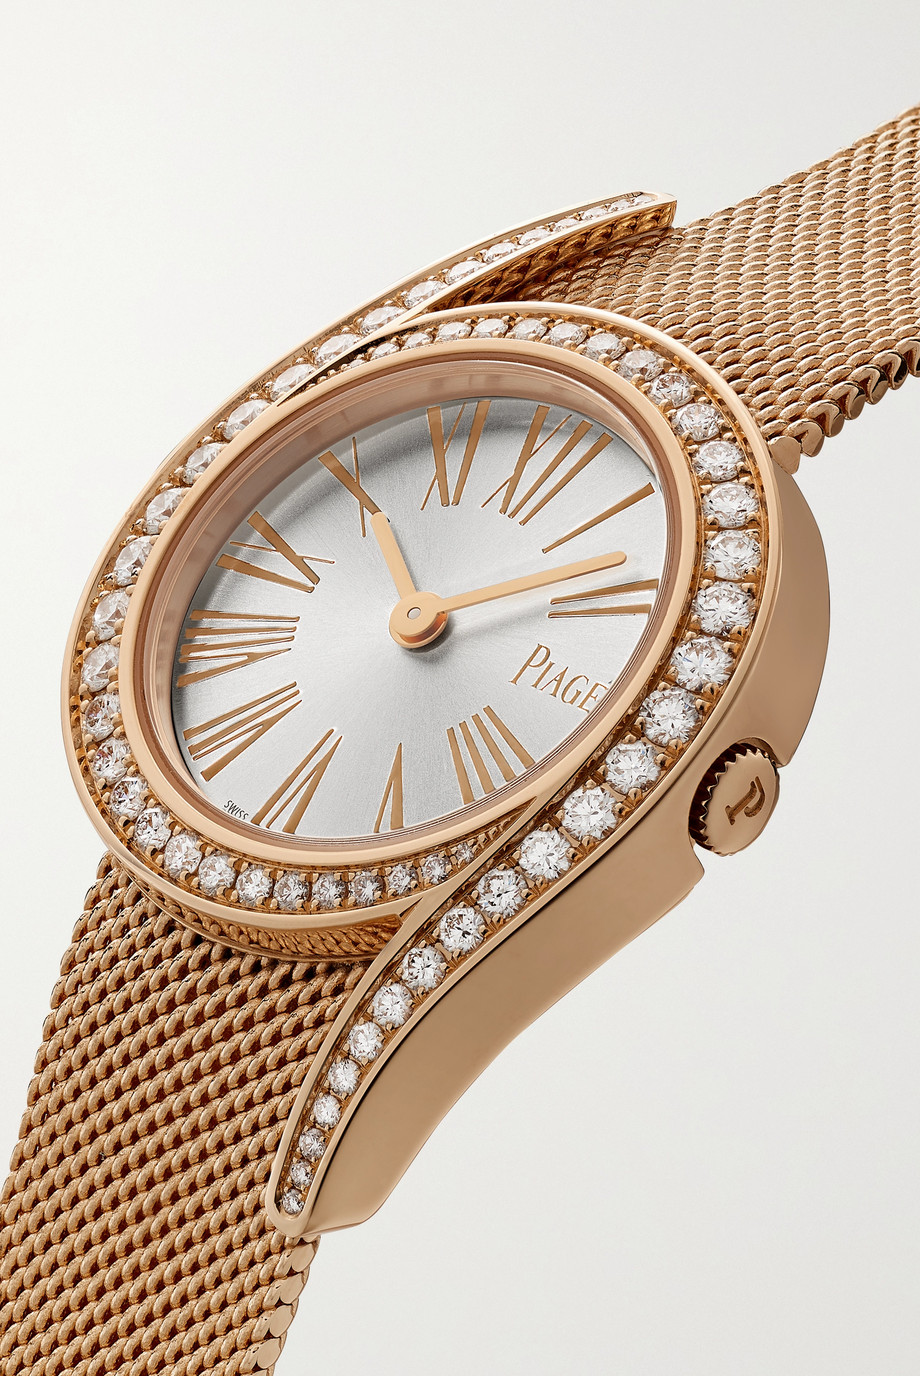 Piaget Limelight Gala 26mm 18-karat rose gold and diamond watch